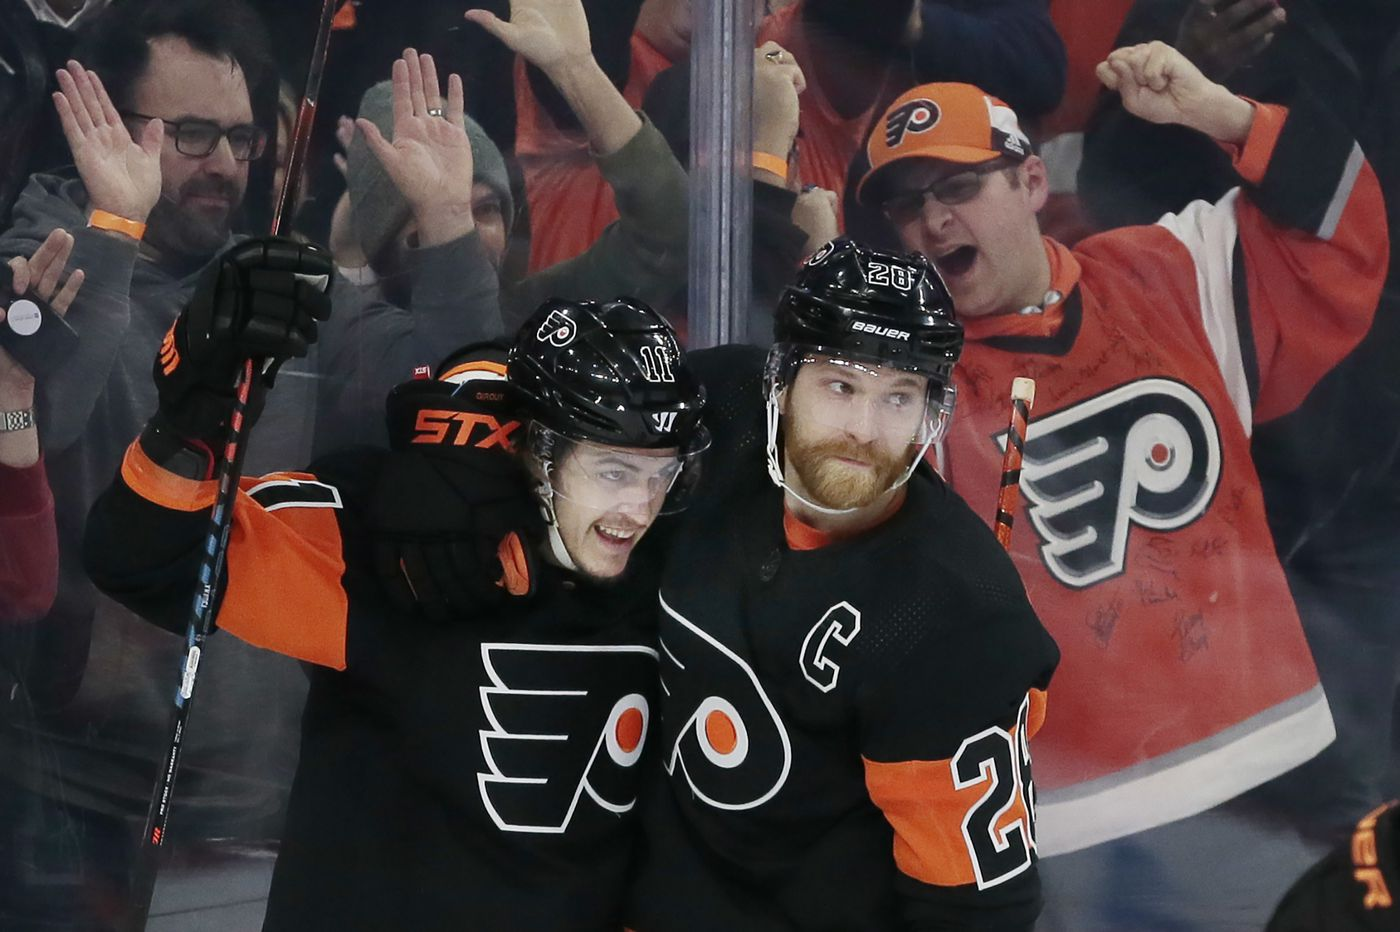 Struggling Flyers captain Claude Giroux: 'I put too much pressure on myself'